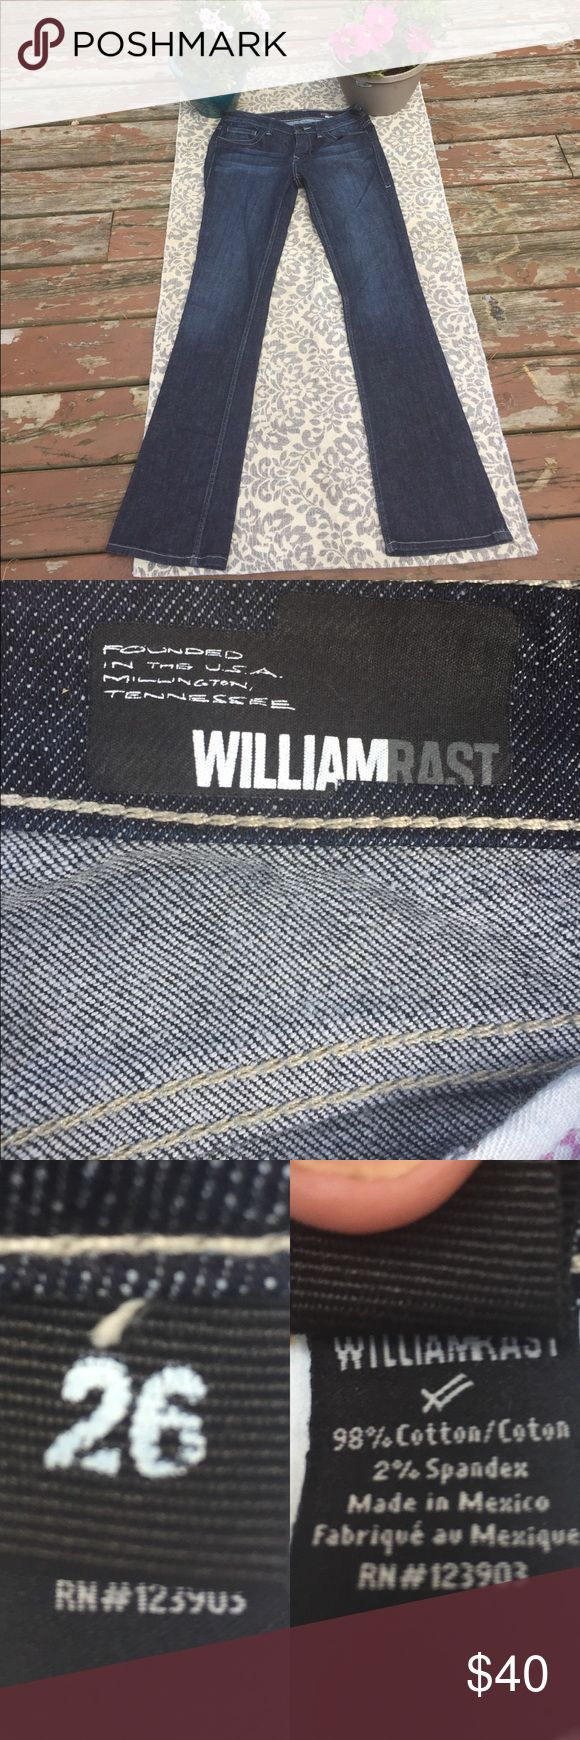 William Rast. Never worn/laundered like new denim Please read the reviews on these they do seem to run large and the recommendations is to order a size down, The owner was a solid 4 at the time she purchased, but due to pregnancy with twins.. she never got to wear them. She feels if you are a size 4 these are a great fit, or if you are a hippier/ booty body type size 2. Mid rise, dark rinse. No flaws, rips, tears or alterations. No stains. Smoke/pet free home. Purchased at Nordstrom's. There…